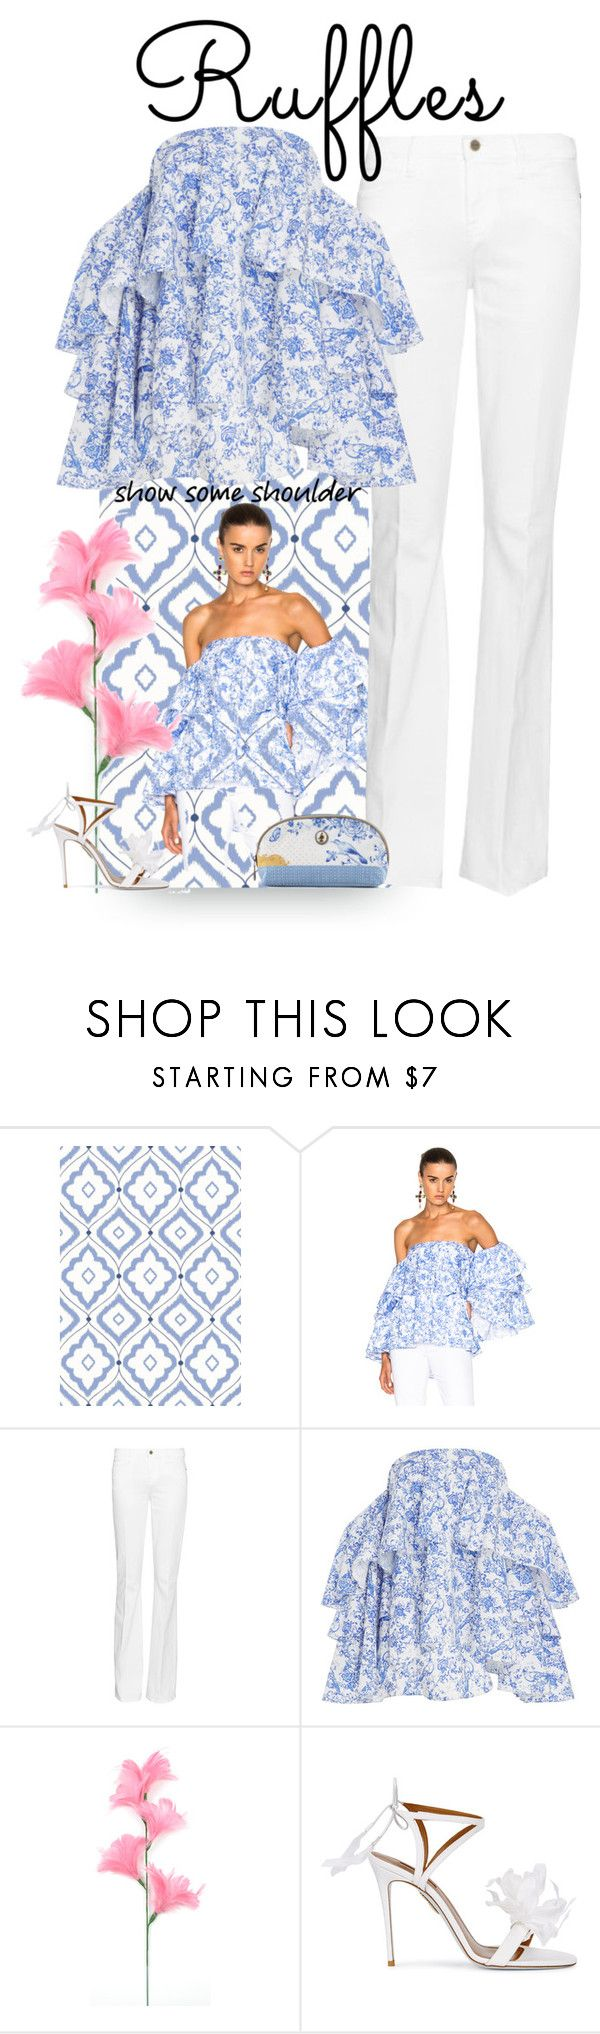 """""""Add Some Flair: Ruffled Tops"""" by easy-dressing ❤ liked on Polyvore featuring Thibaut, Caroline Constas, Frame, Aquazzura and PiP Studio"""